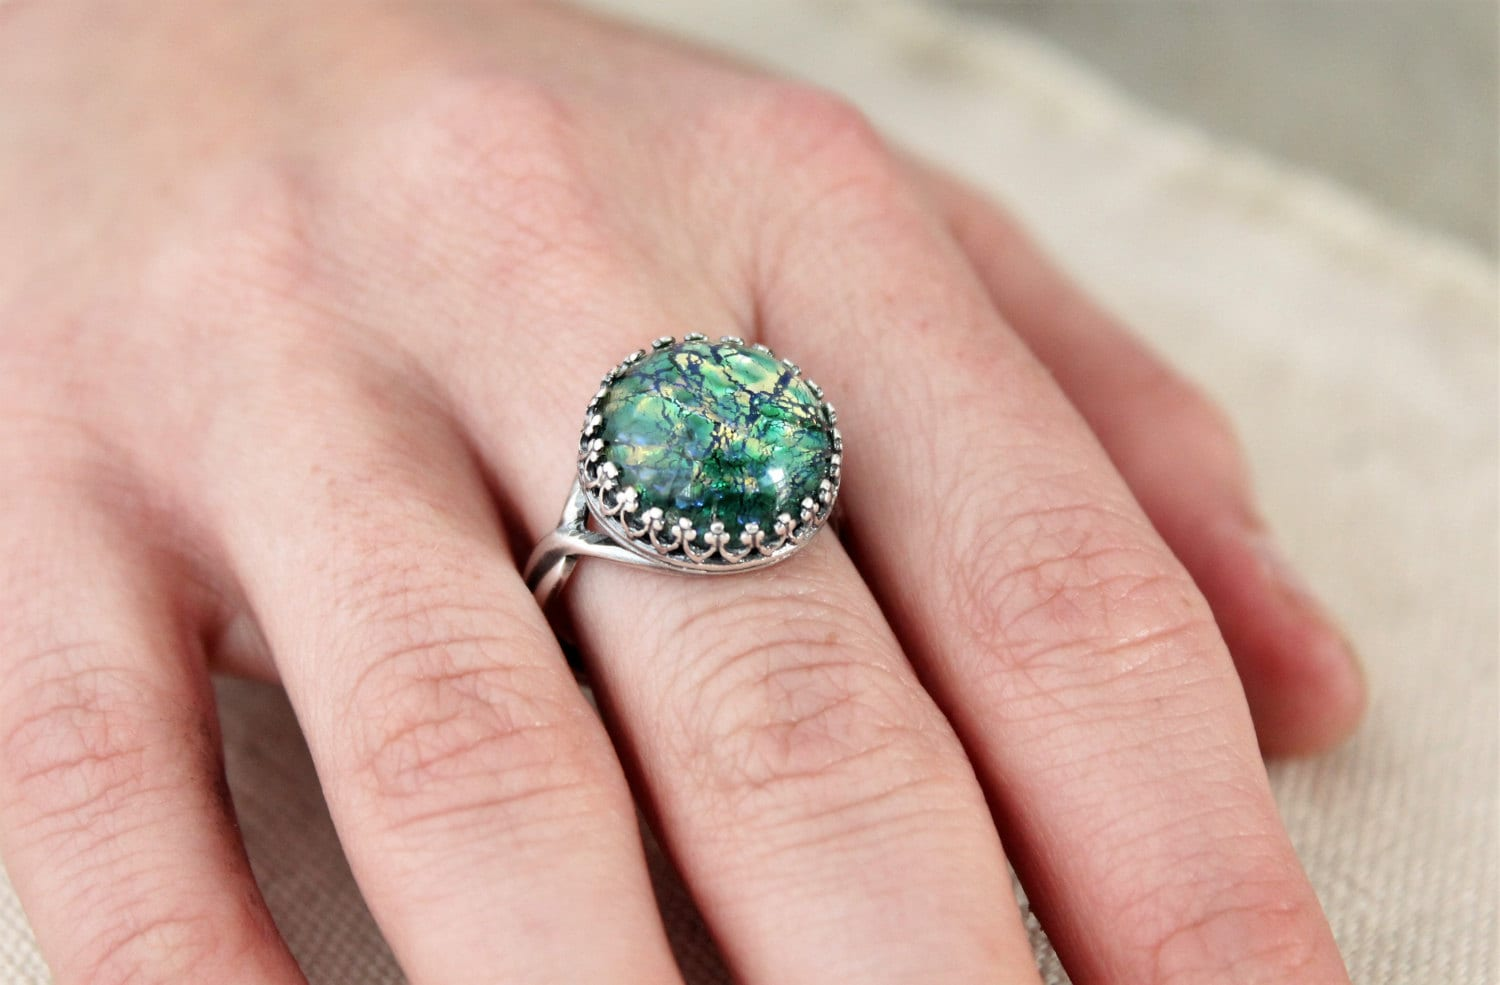 Vintage Emerald Opal Rings Green Fire Opal Ring Large Round